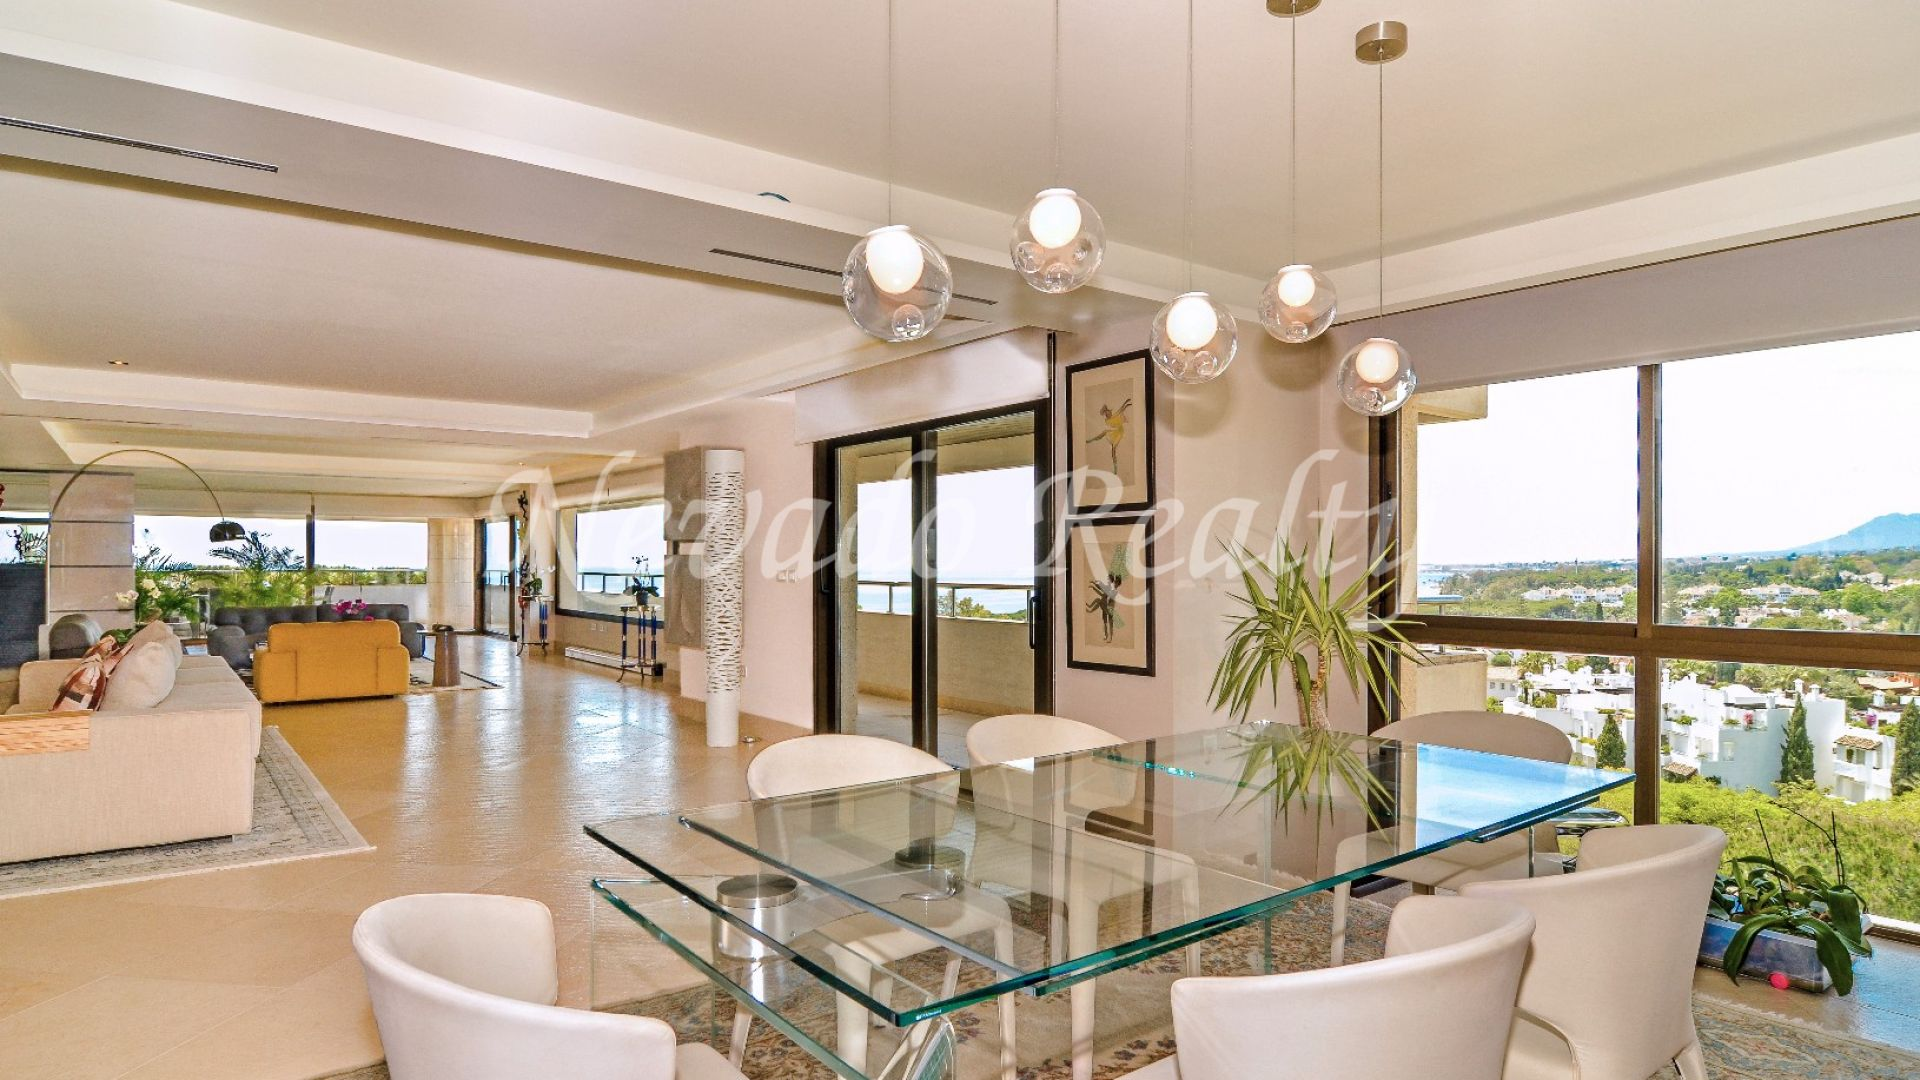 Stunning penthouse with panoramic sea views in Residencial Palacio de Congresos